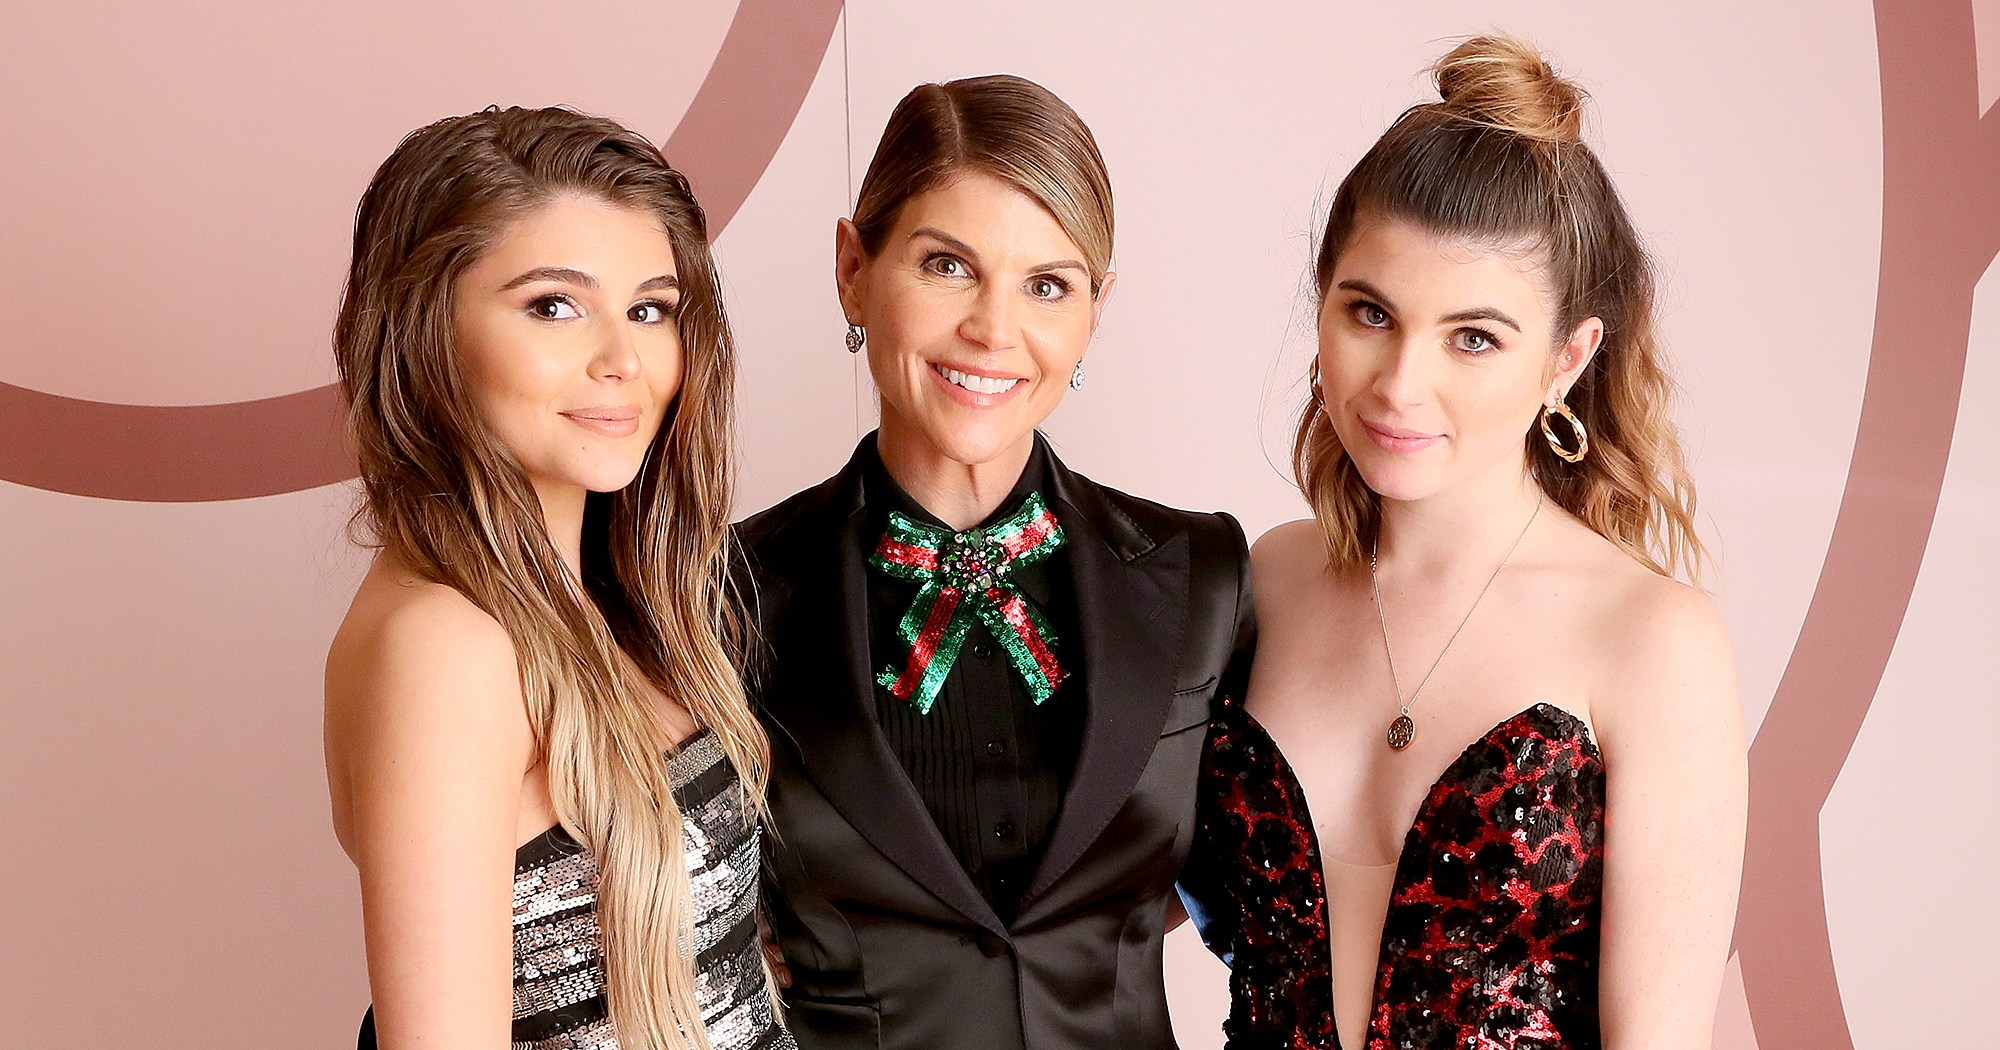 Lori Loughlin, Daughters Were 'Best Friends' Before College Scam